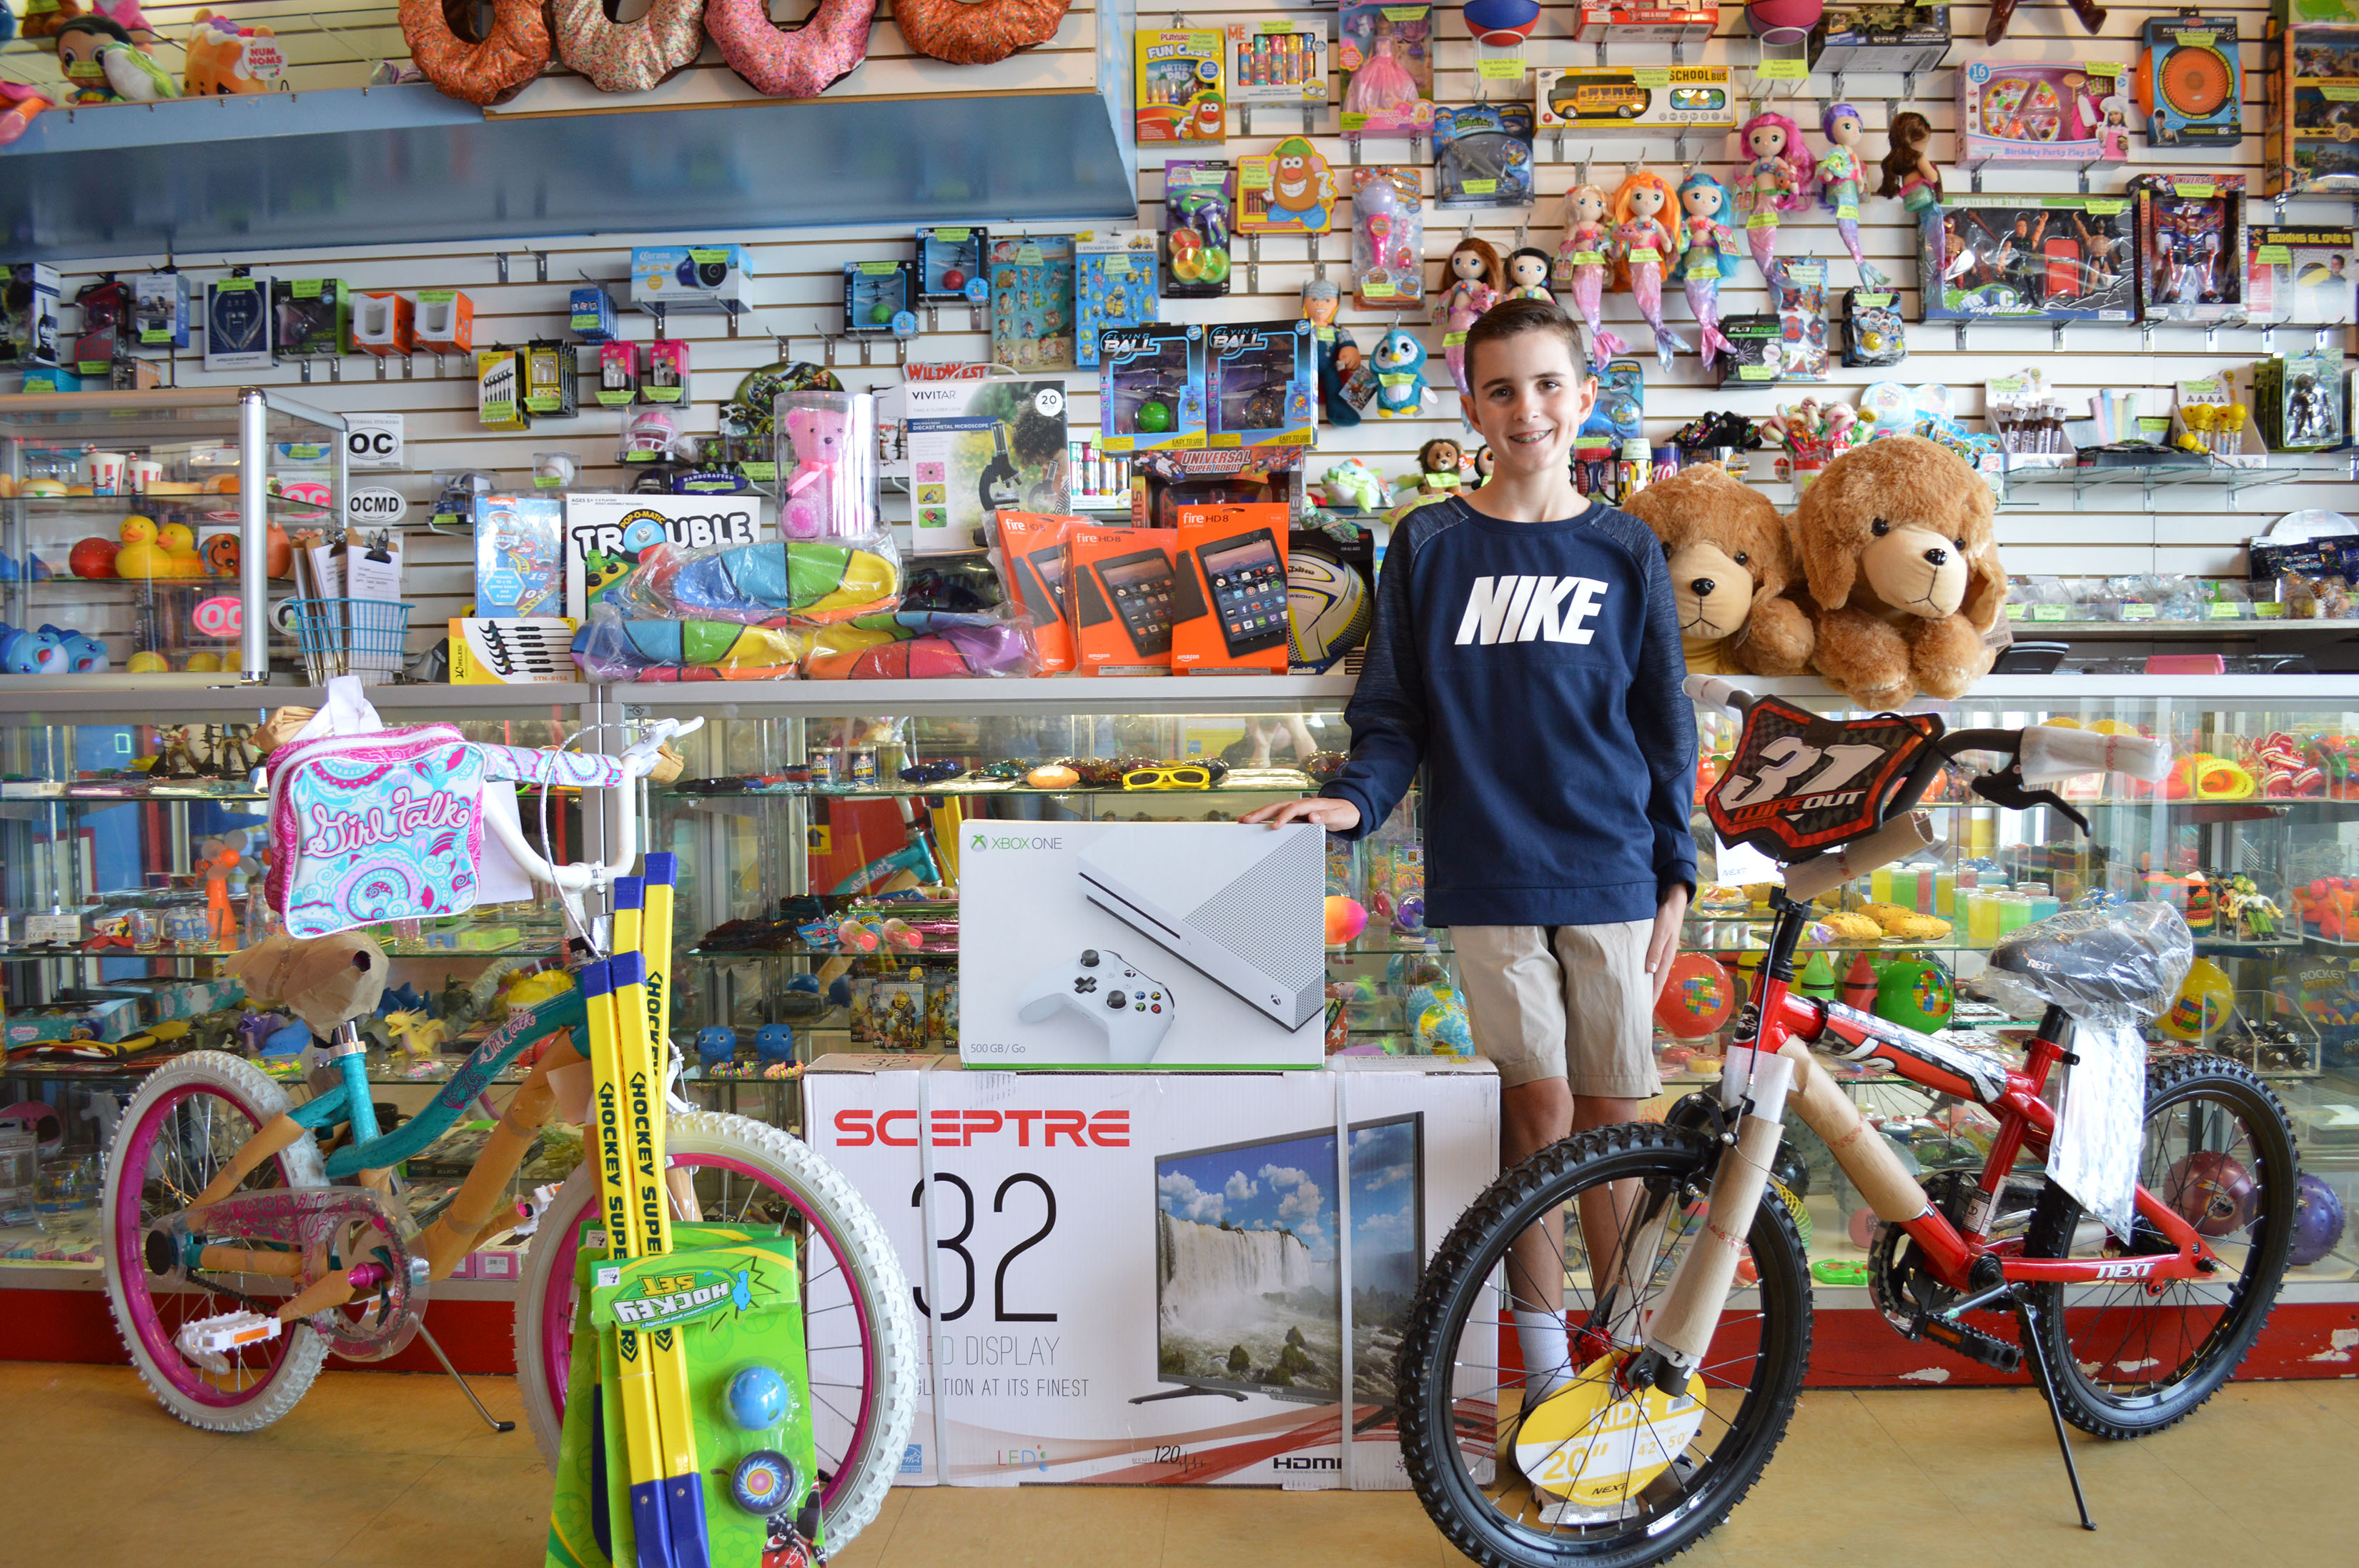 2018 christmas giveaways for needy families